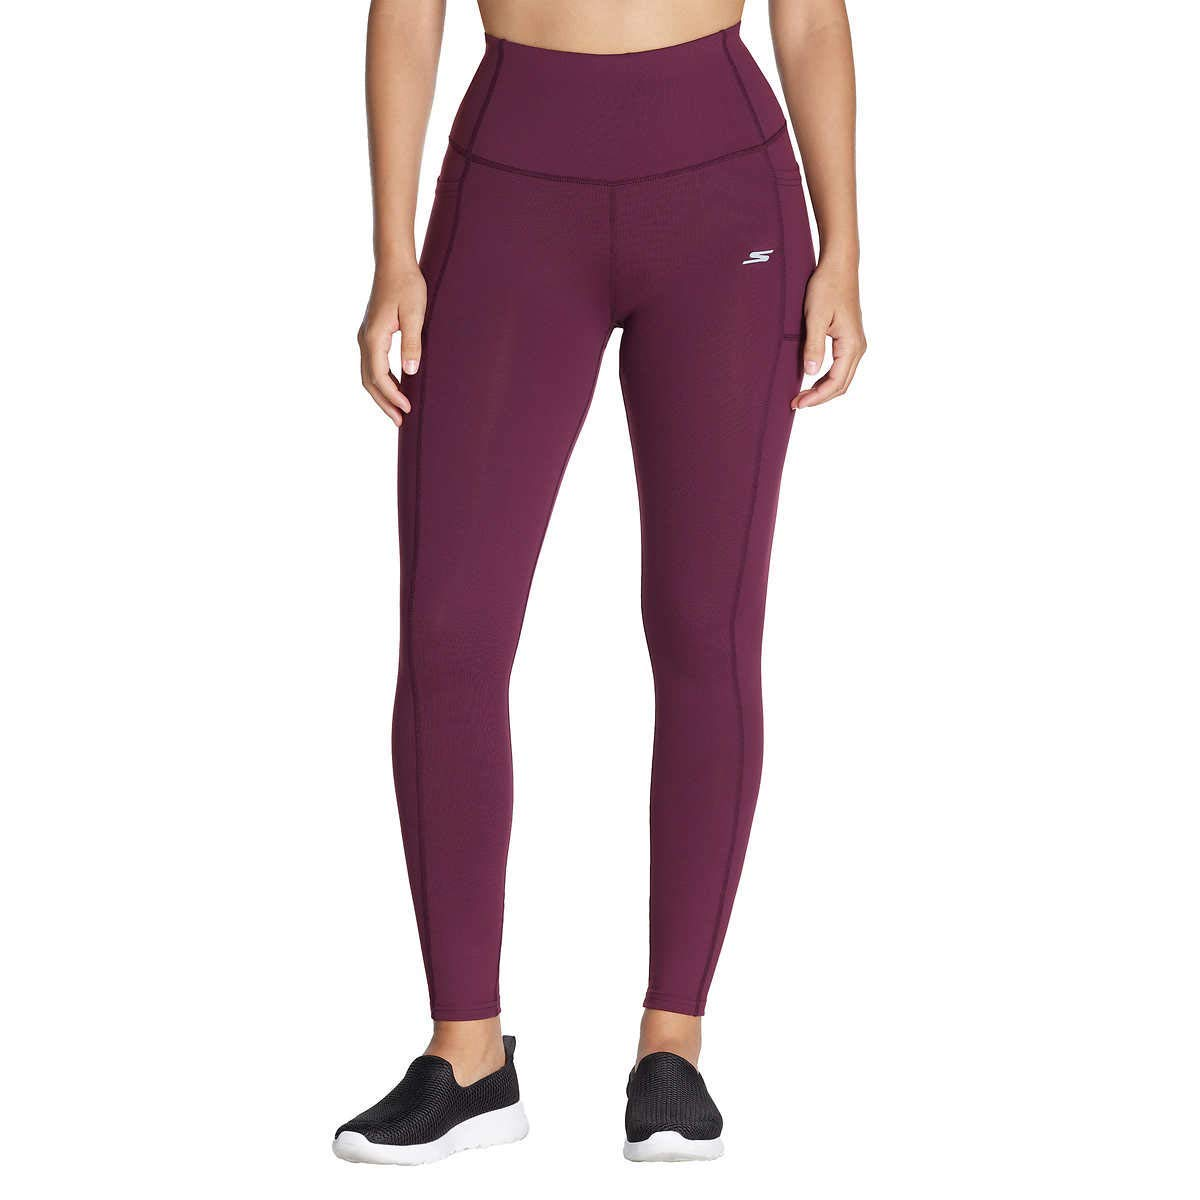 Skechers Women's Go Walk High Waist Yoga Workout Legging